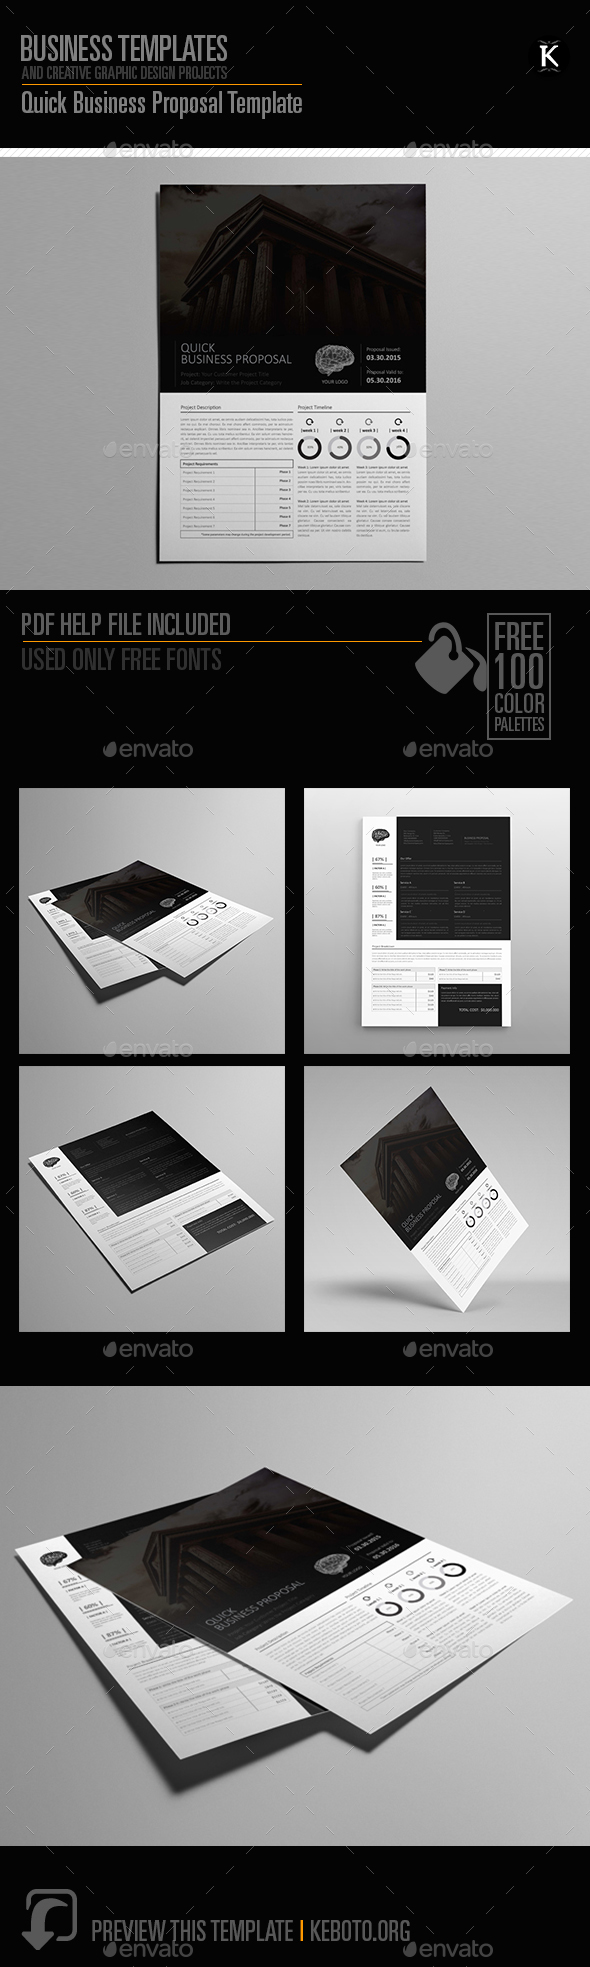 Quick Business Proposal Template - Proposals & Invoices Stationery